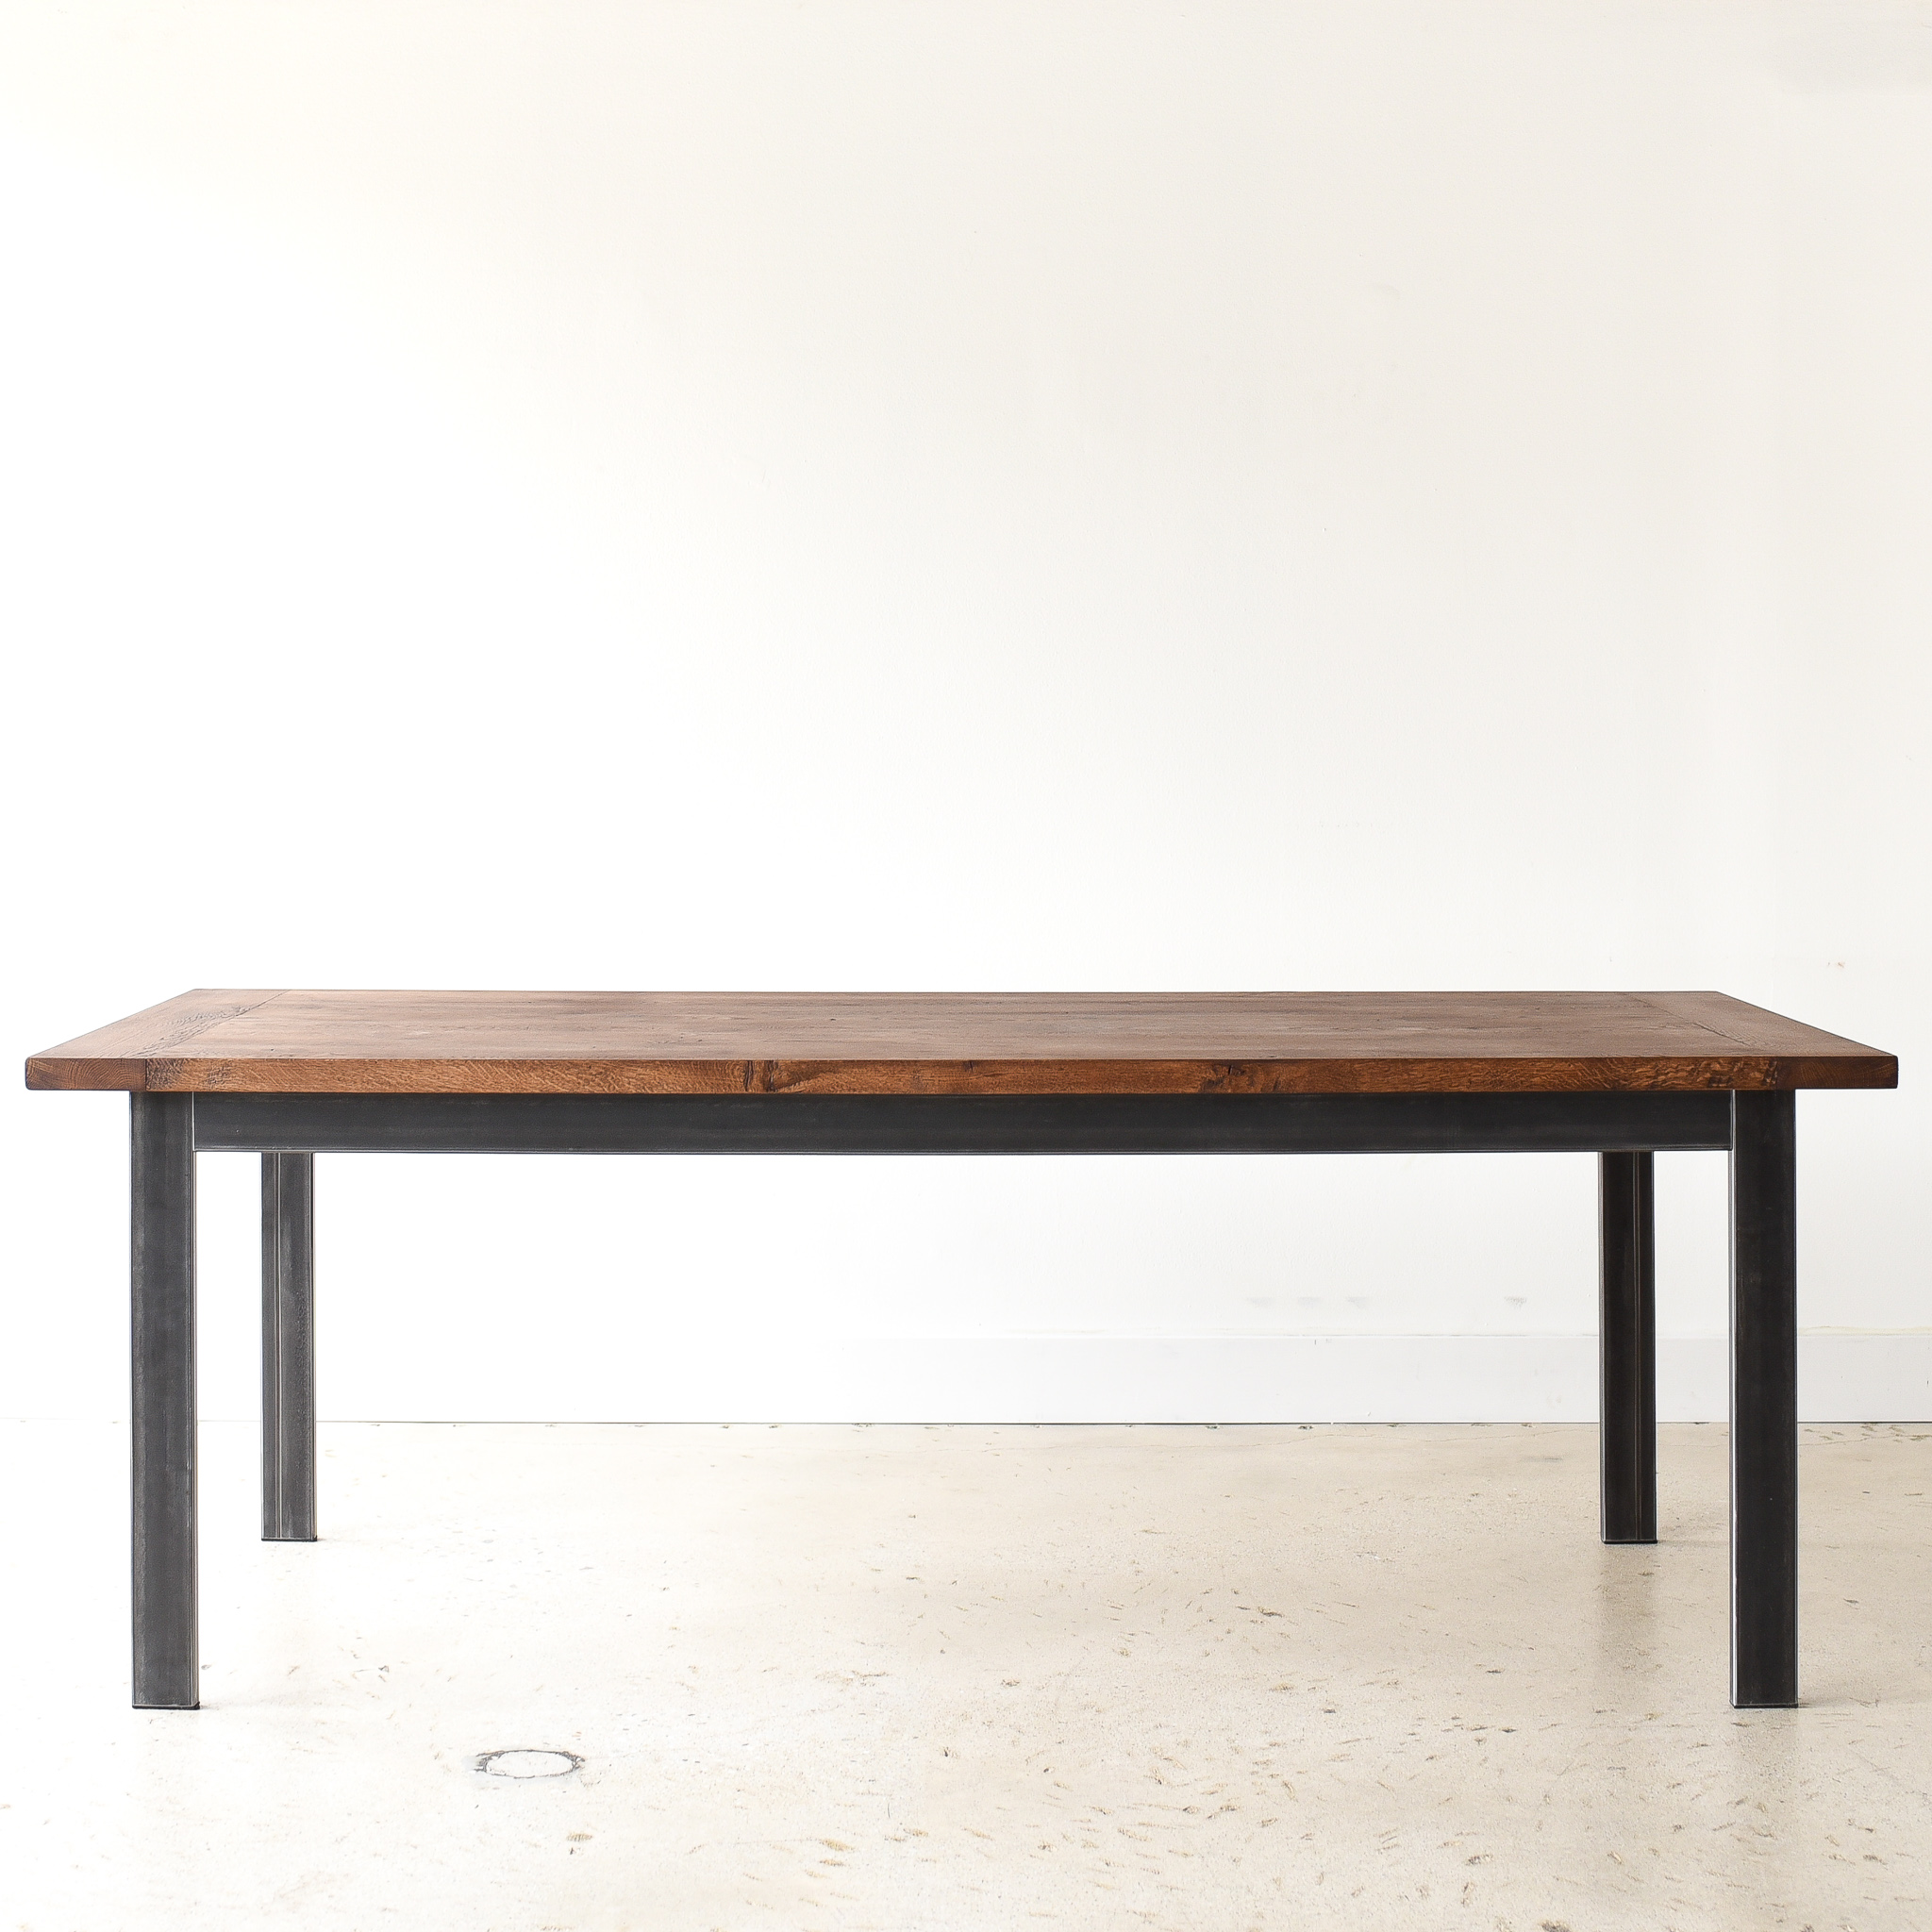 Industrial Reclaimed Wood Dining Table Steel Frame What We Make